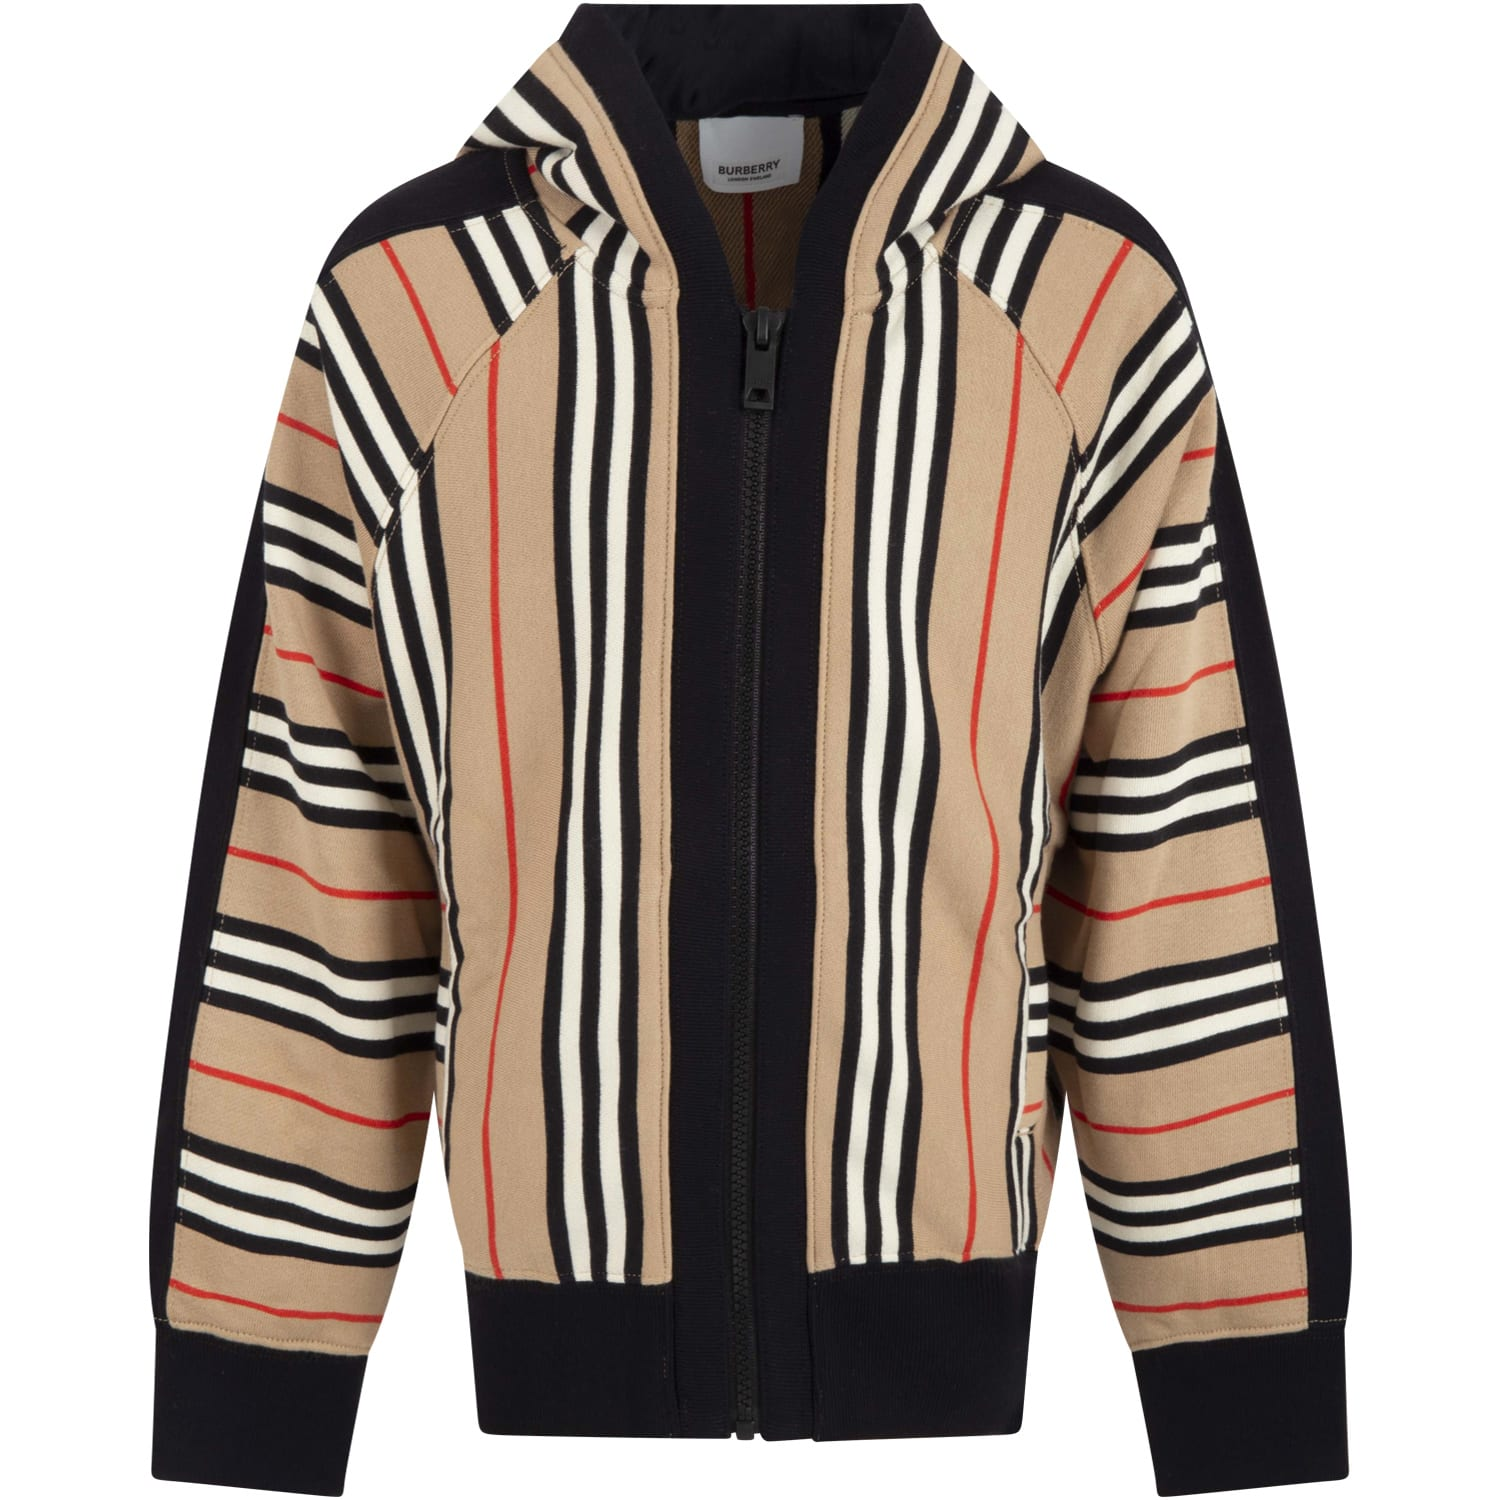 Burberry STRIPED SWEATSHIRT FOR GIRL